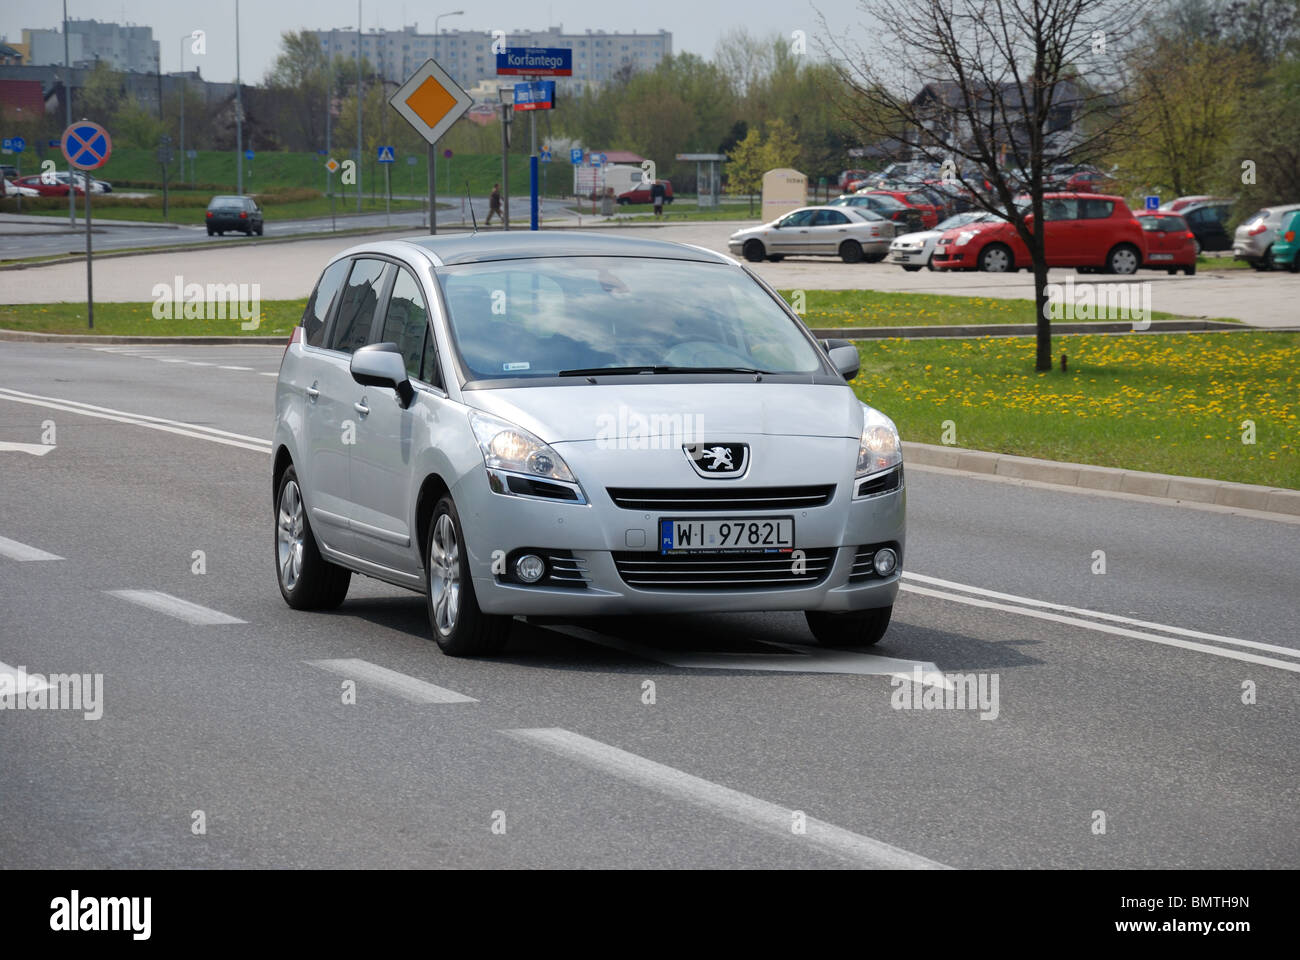 Peugeot 5008 1.6 THP - MY 2010 - silver metallic - five doors (5D) - French popular compact MPV (van) - driving - Stock Image